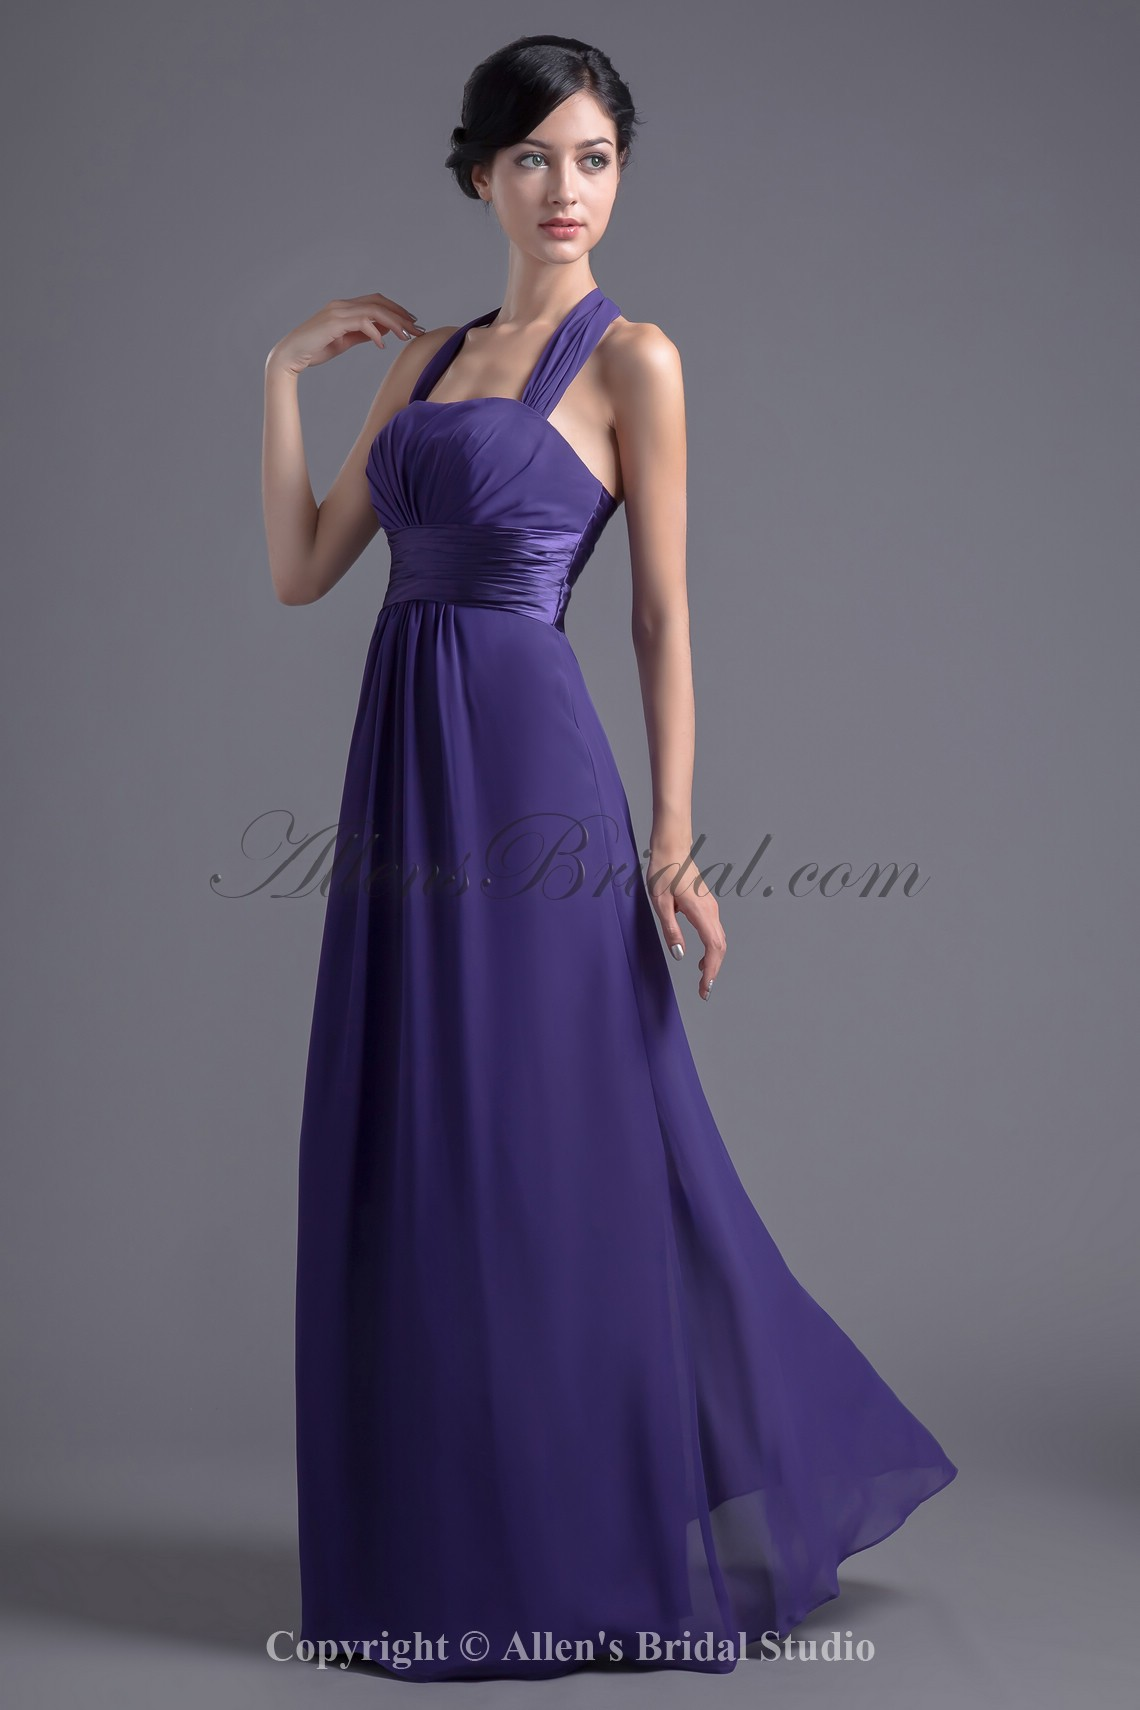 /10-75/chiffon-halter-neckline-column-floor-length-prom-dress.jpg